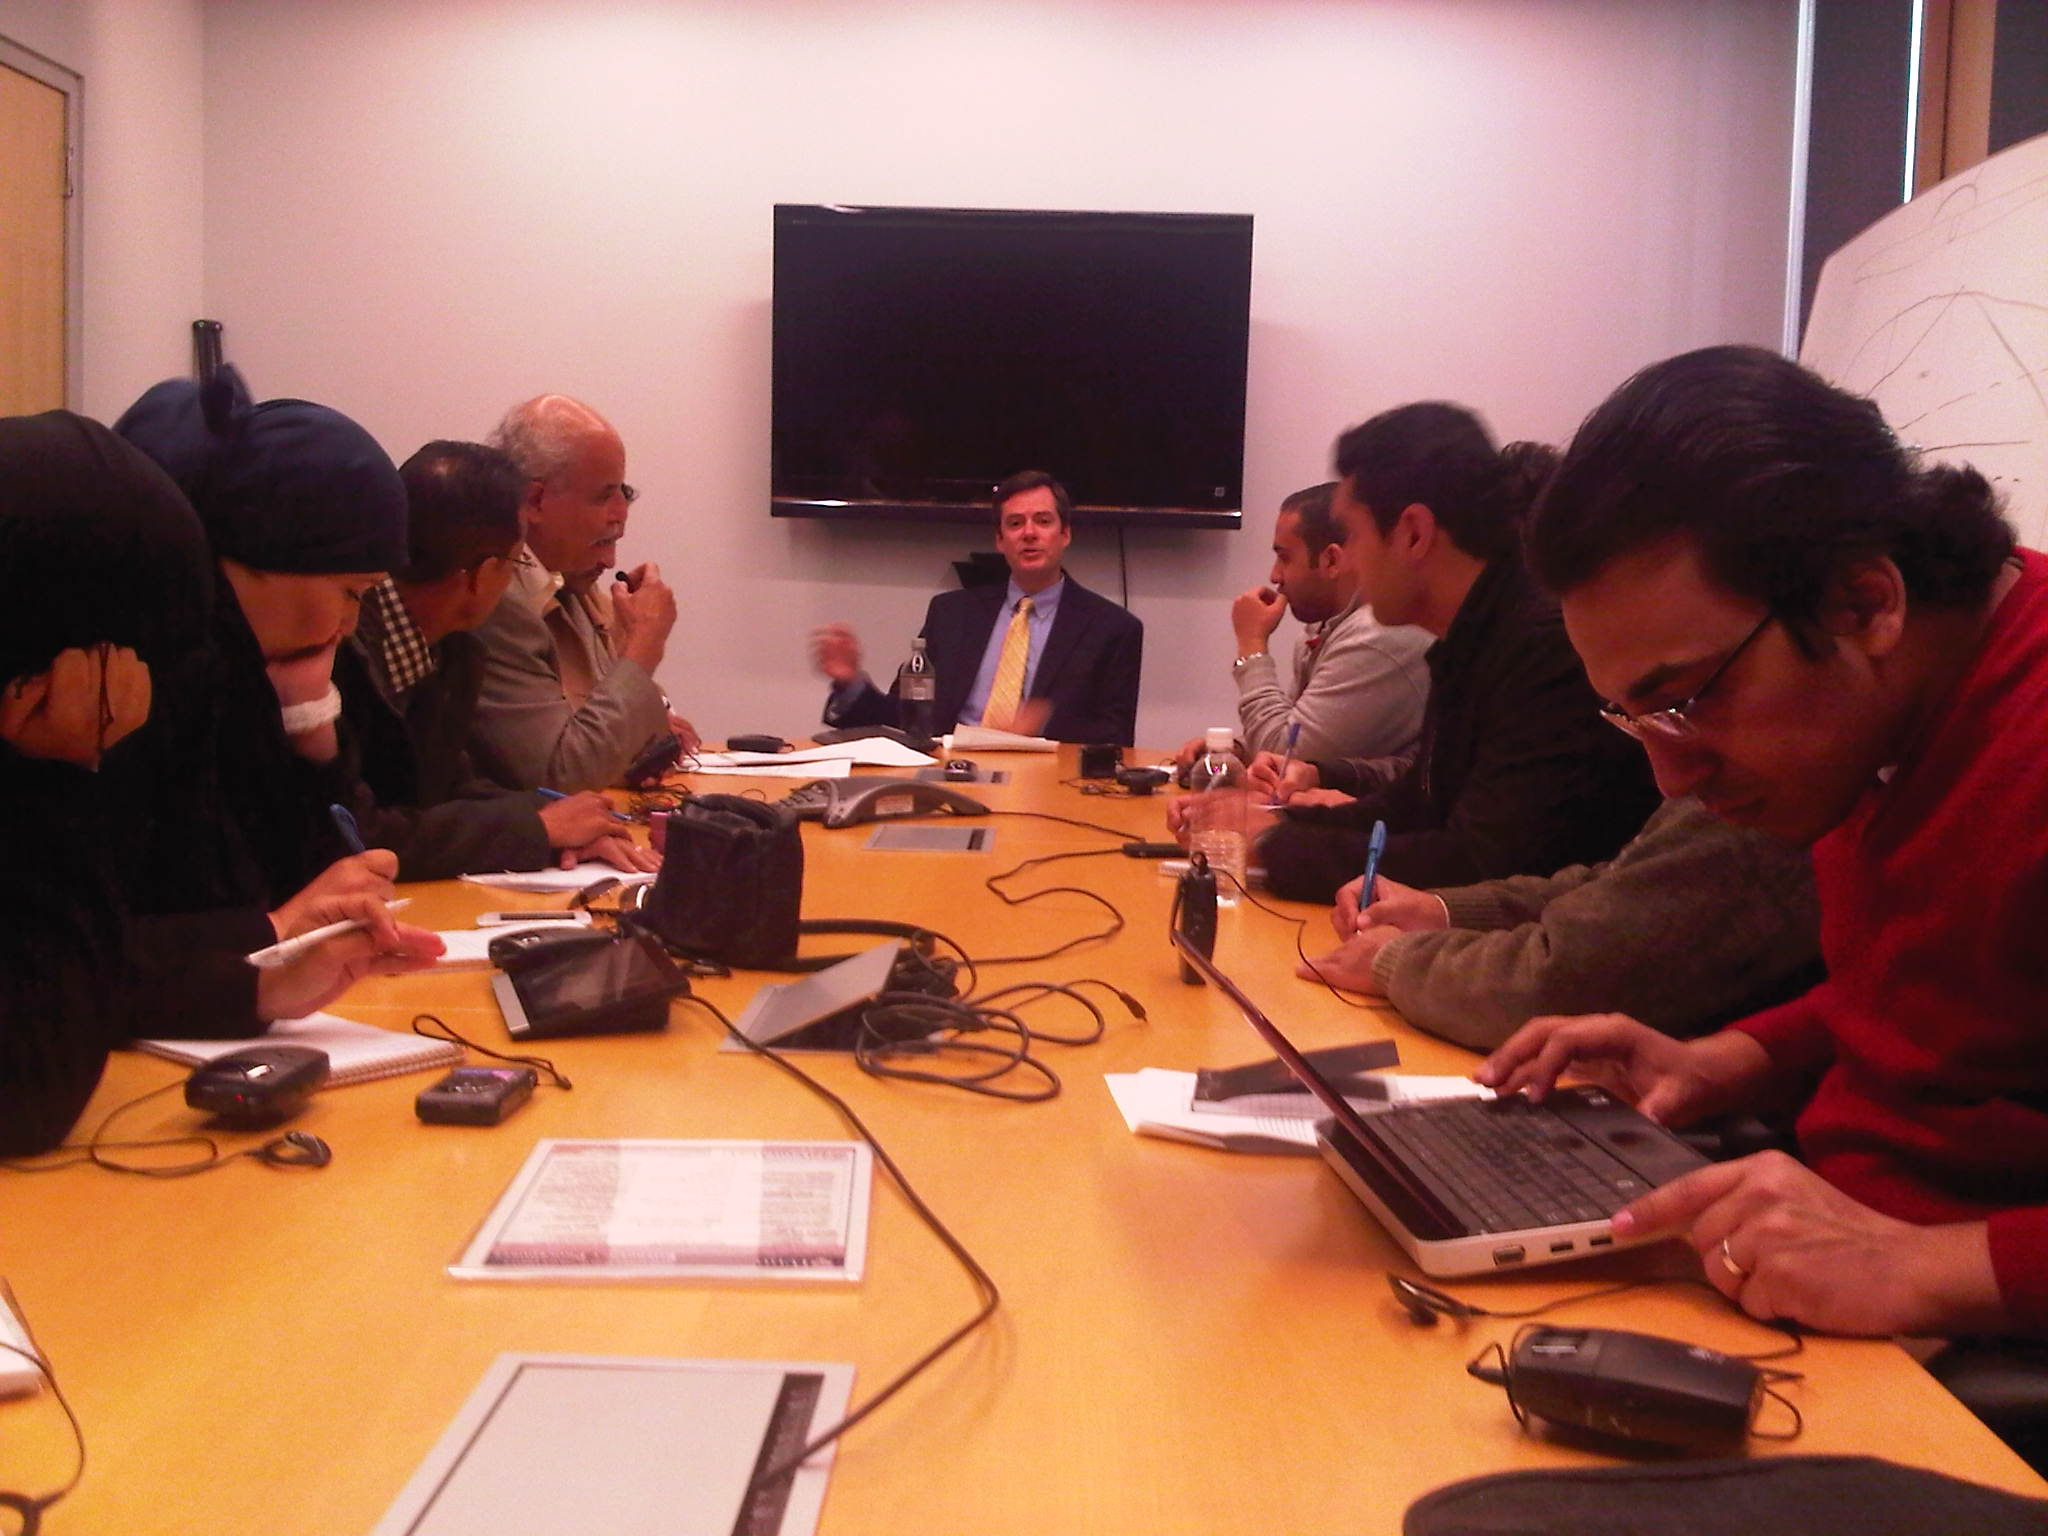 Journalists from Egypt, Libya, Tunisia and Yemen covering the U.S. election speak with FactCheck.org's Rob Farley, center.